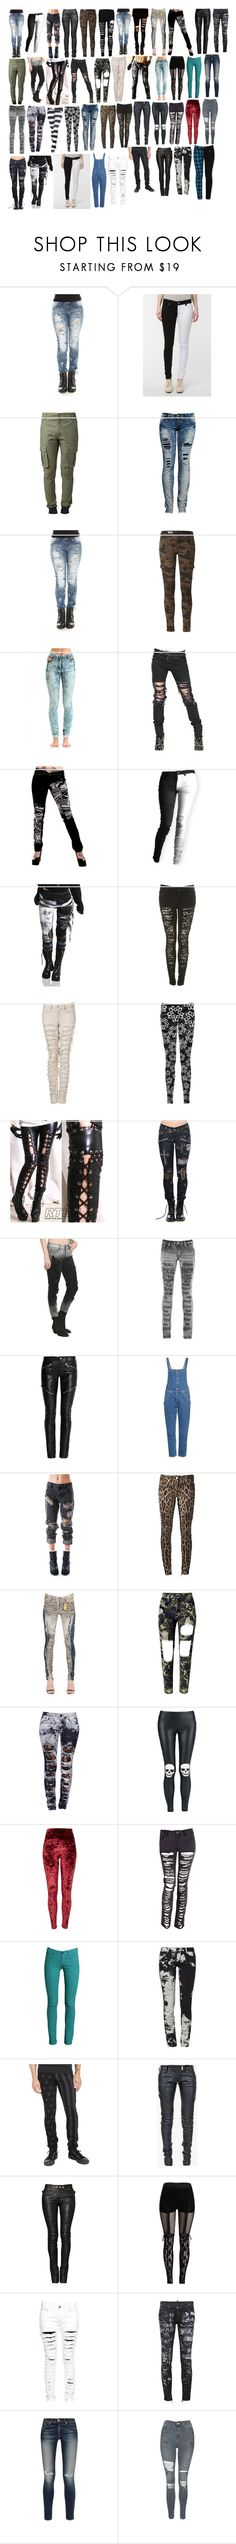 """""""Girl Pants 18"""" by spellcasters ❤ liked on Polyvore featuring Hot Topic, Tripp, Pepe Jeans London, Jena.Theo, Christopher Kane, INDIE HAIR, Vision, PlayMe Jeans, Yves Saint Laurent and M.i.h Jeans"""